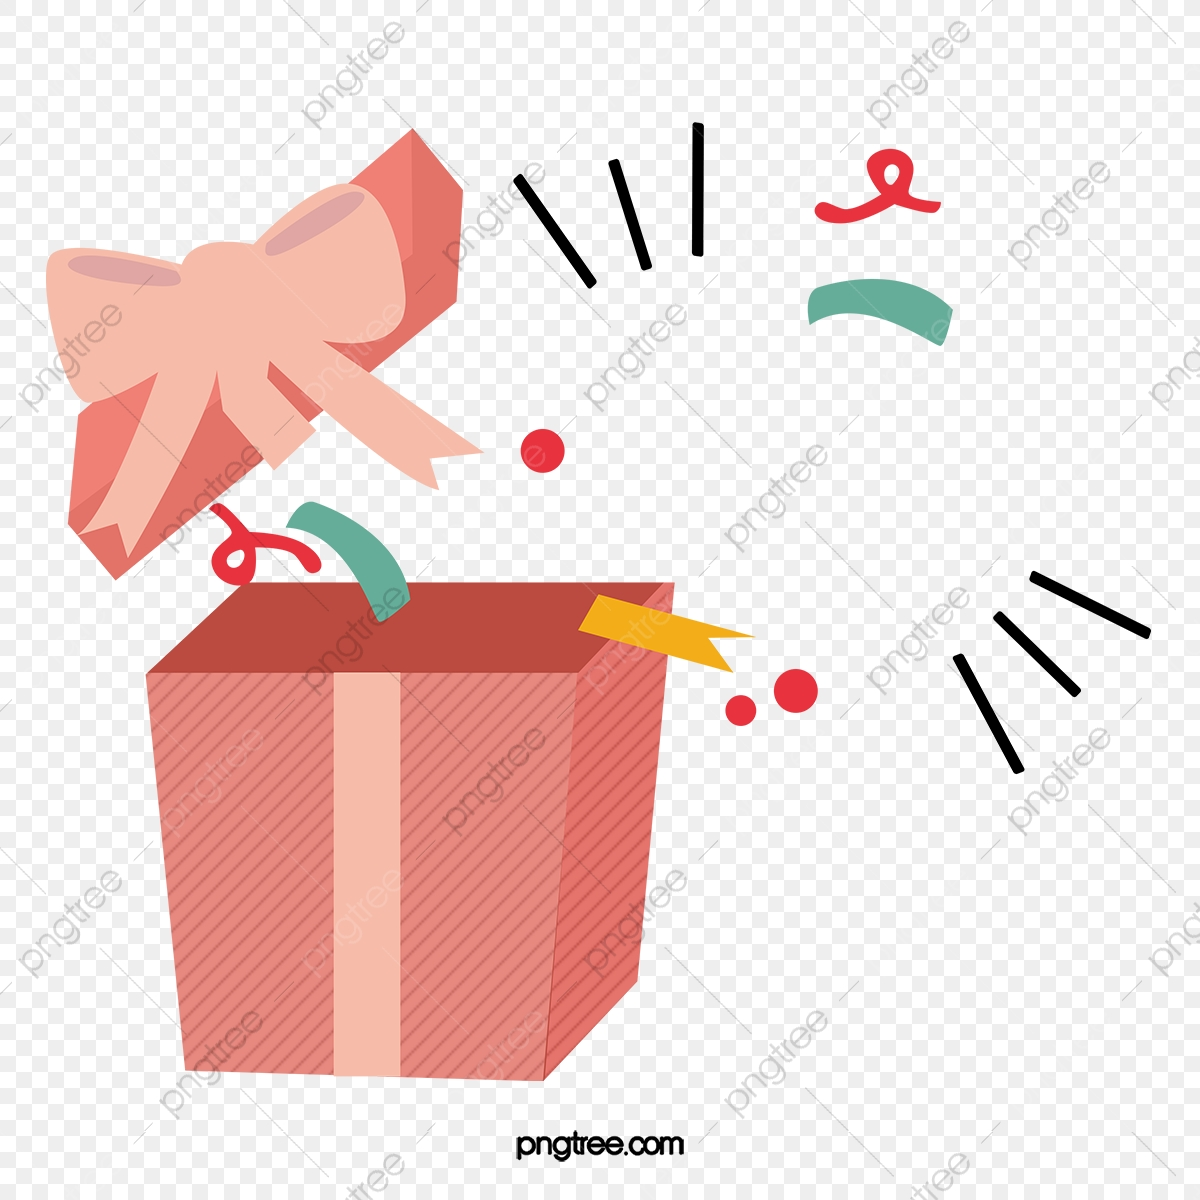 Open Gift Box Vector Png Pink Gift Box Png Transparent Clipart Image And Psd File For Free Download